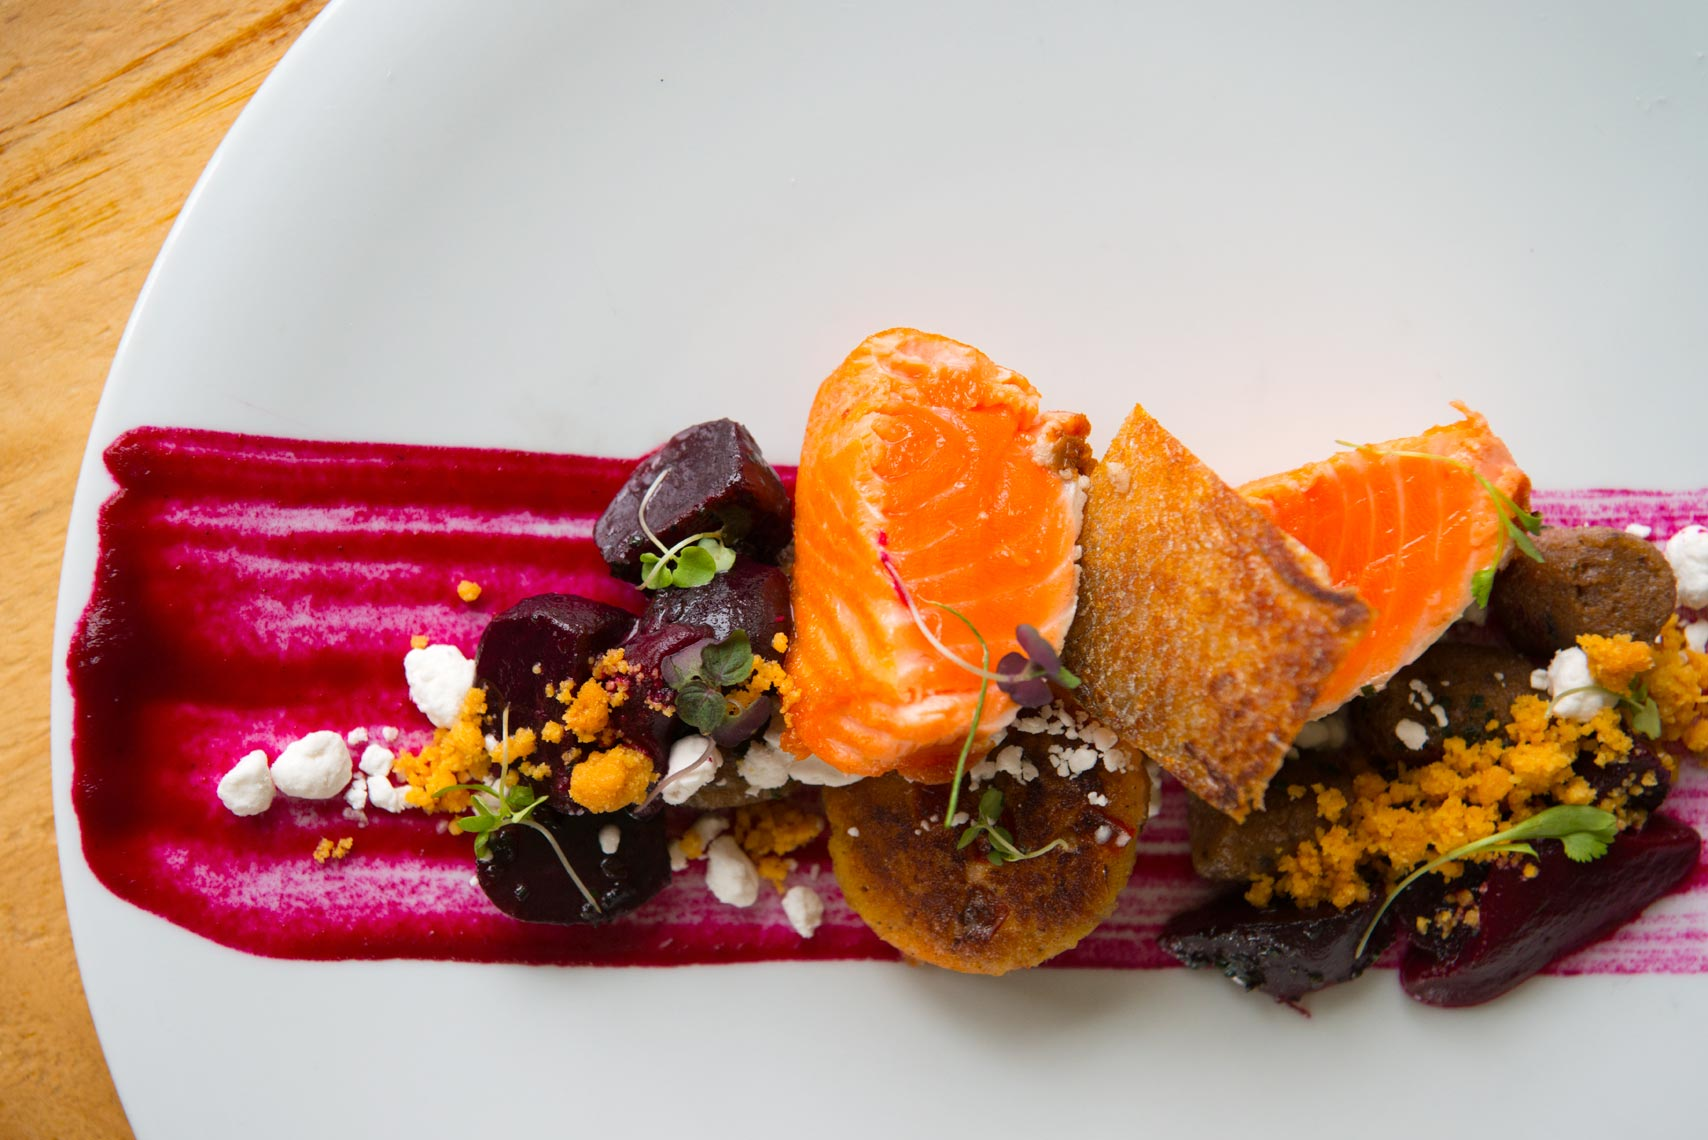 Salmon Dish - The Ryland Inn - New Jersey Restaurant Photography